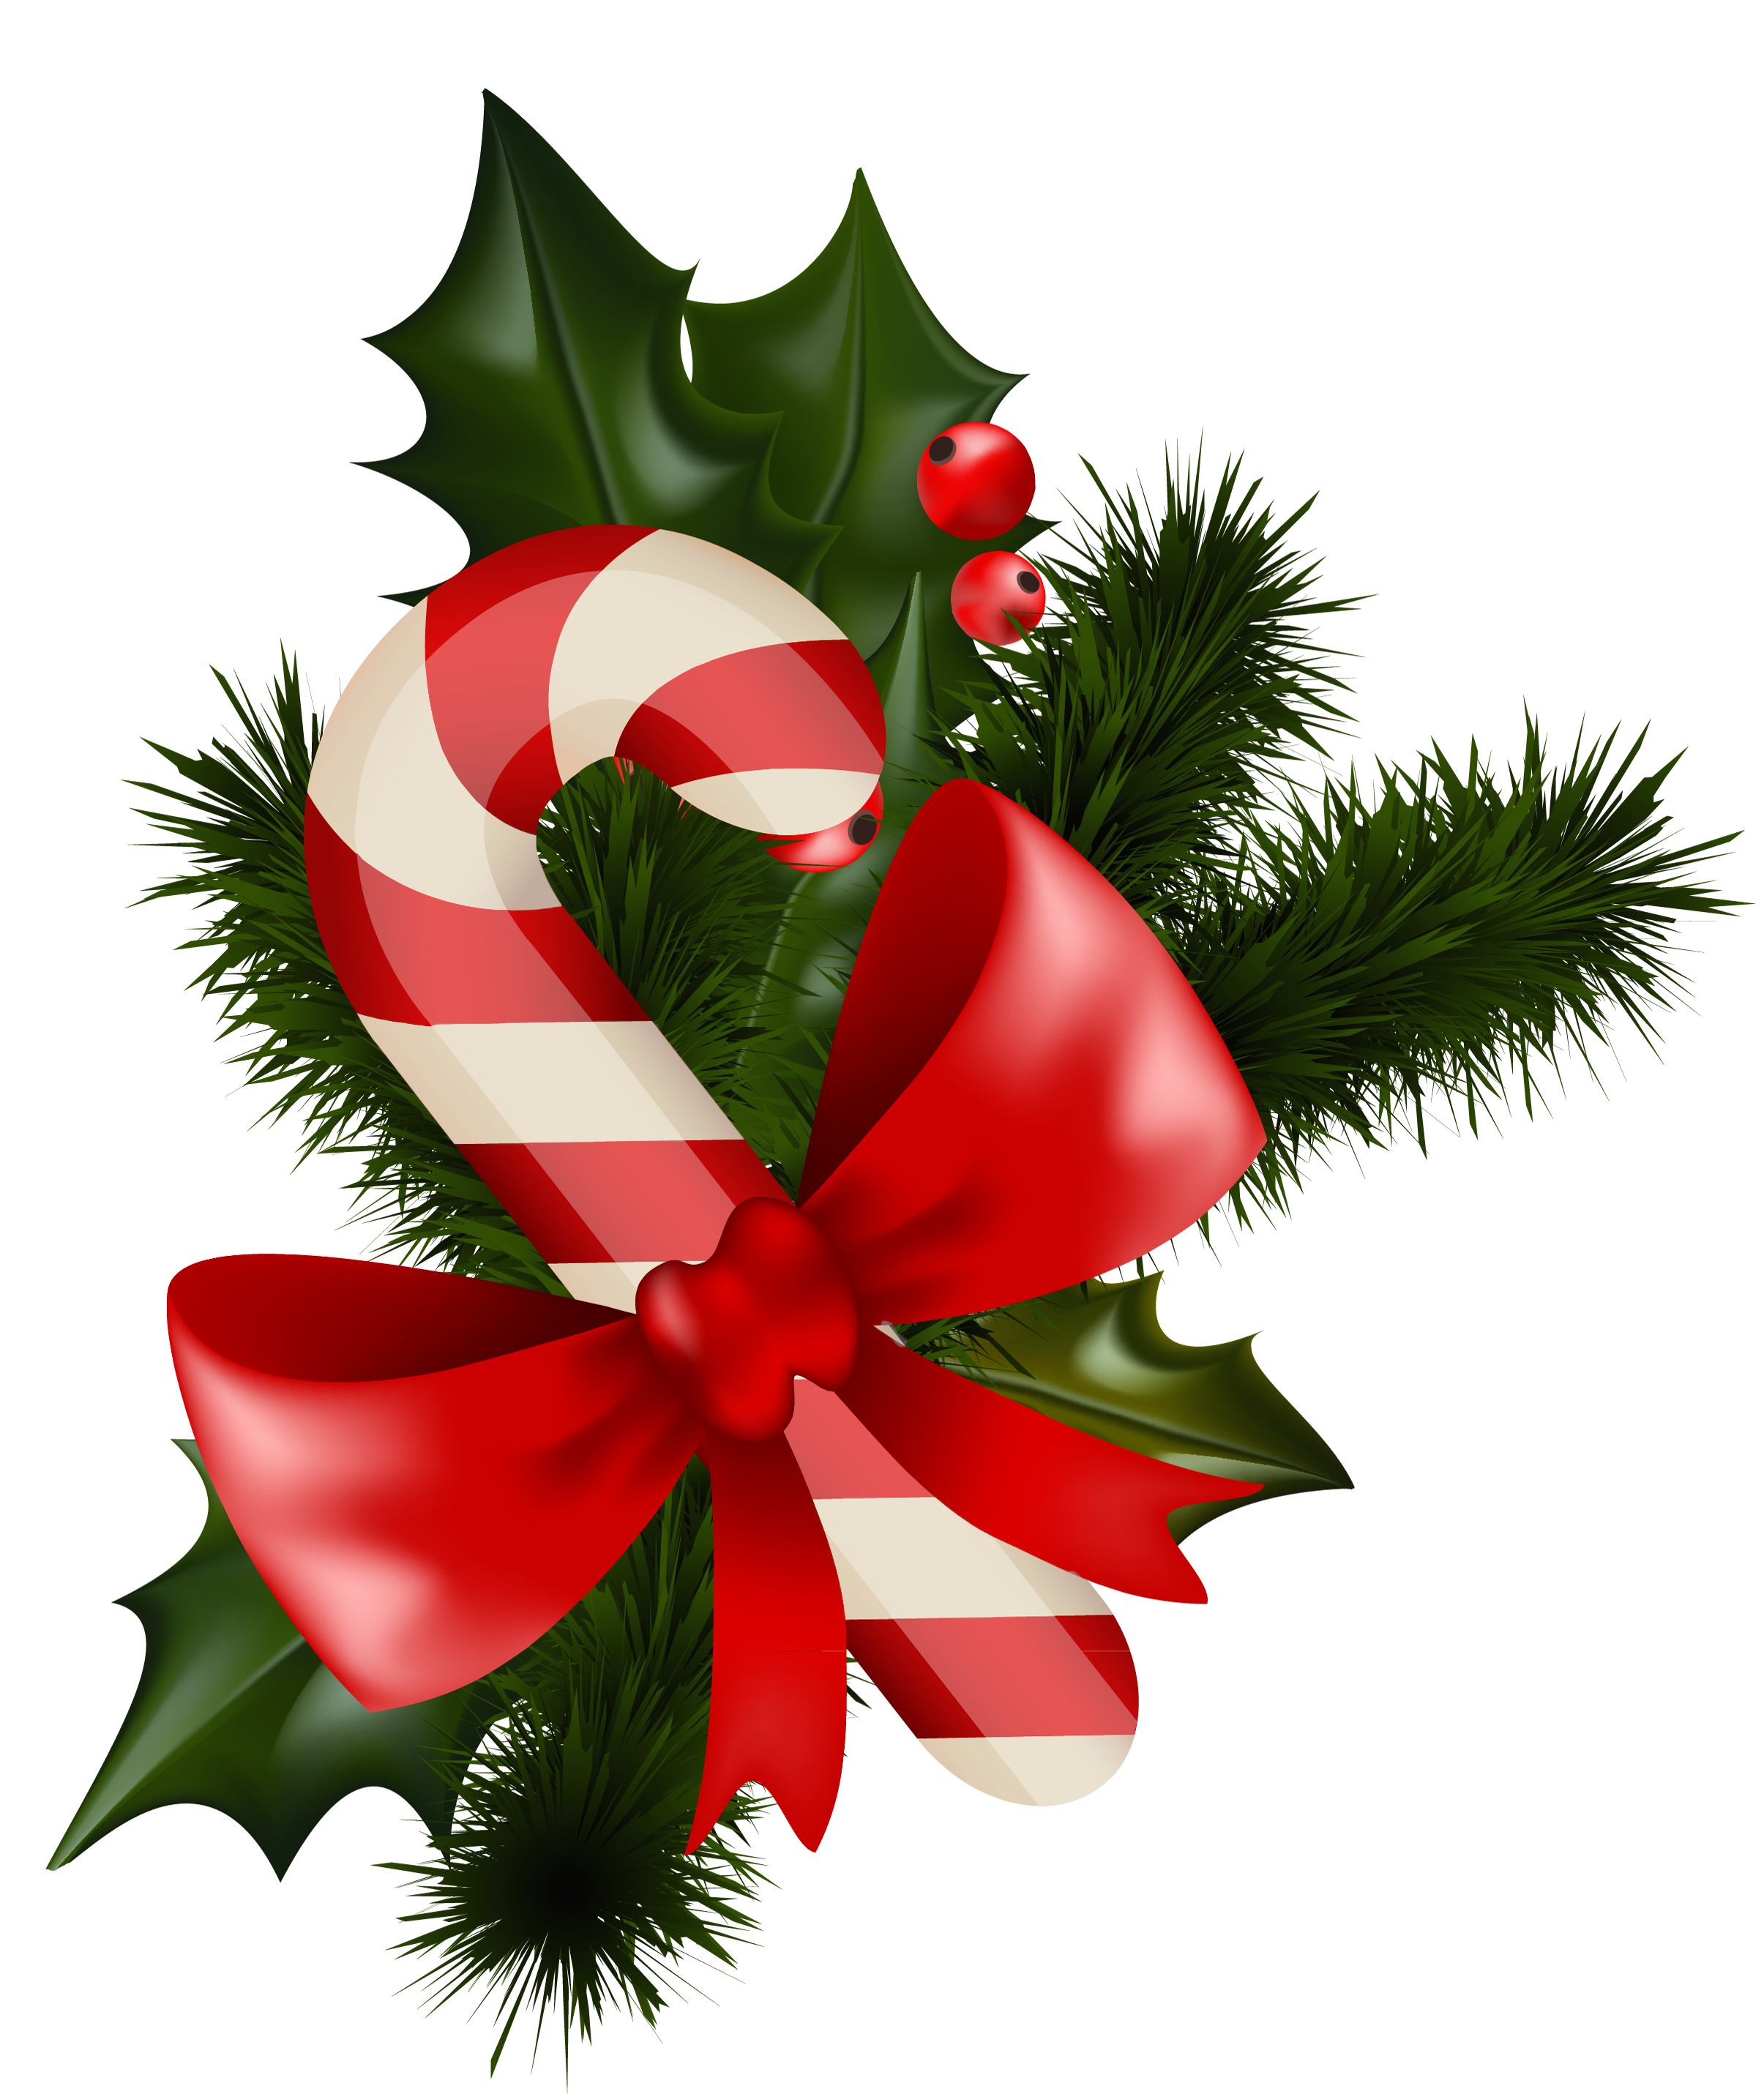 Transparent_Christmas_Candy_Cane_with_Mistletoe.png?m=1383001200.